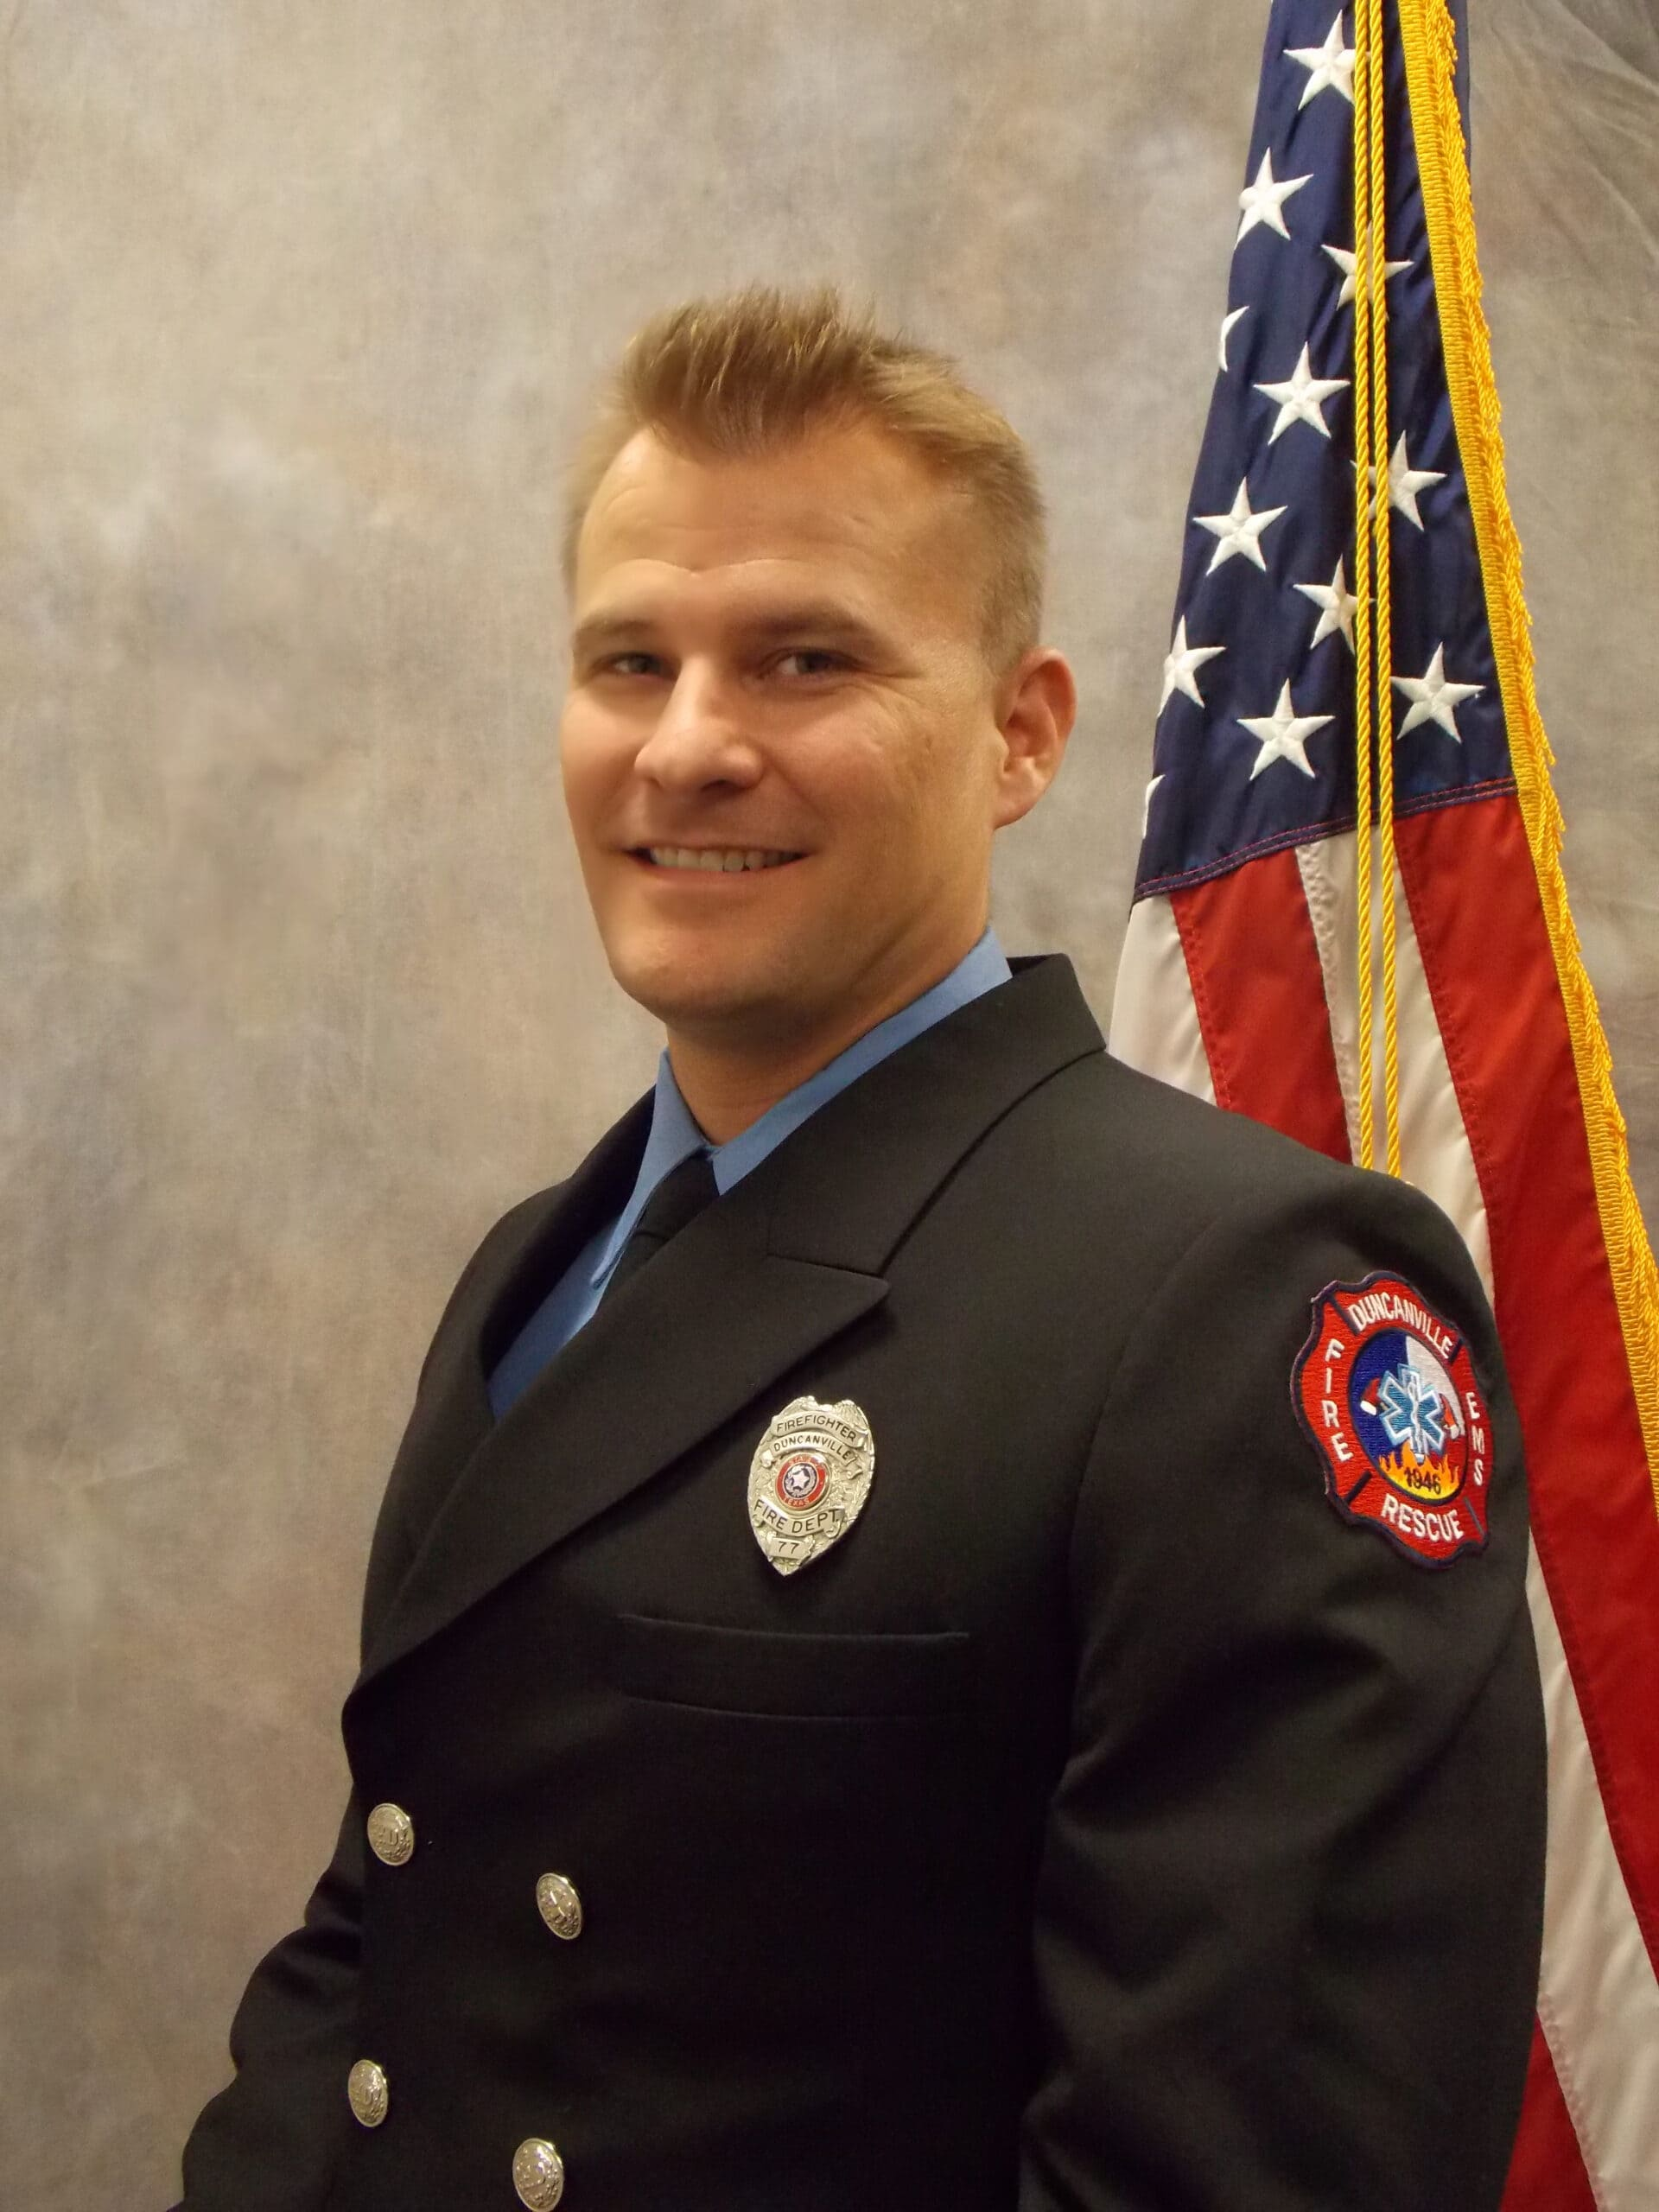 Daniel Micah Kendall, Beloved Duncanville Firefighter, Died July 31 1